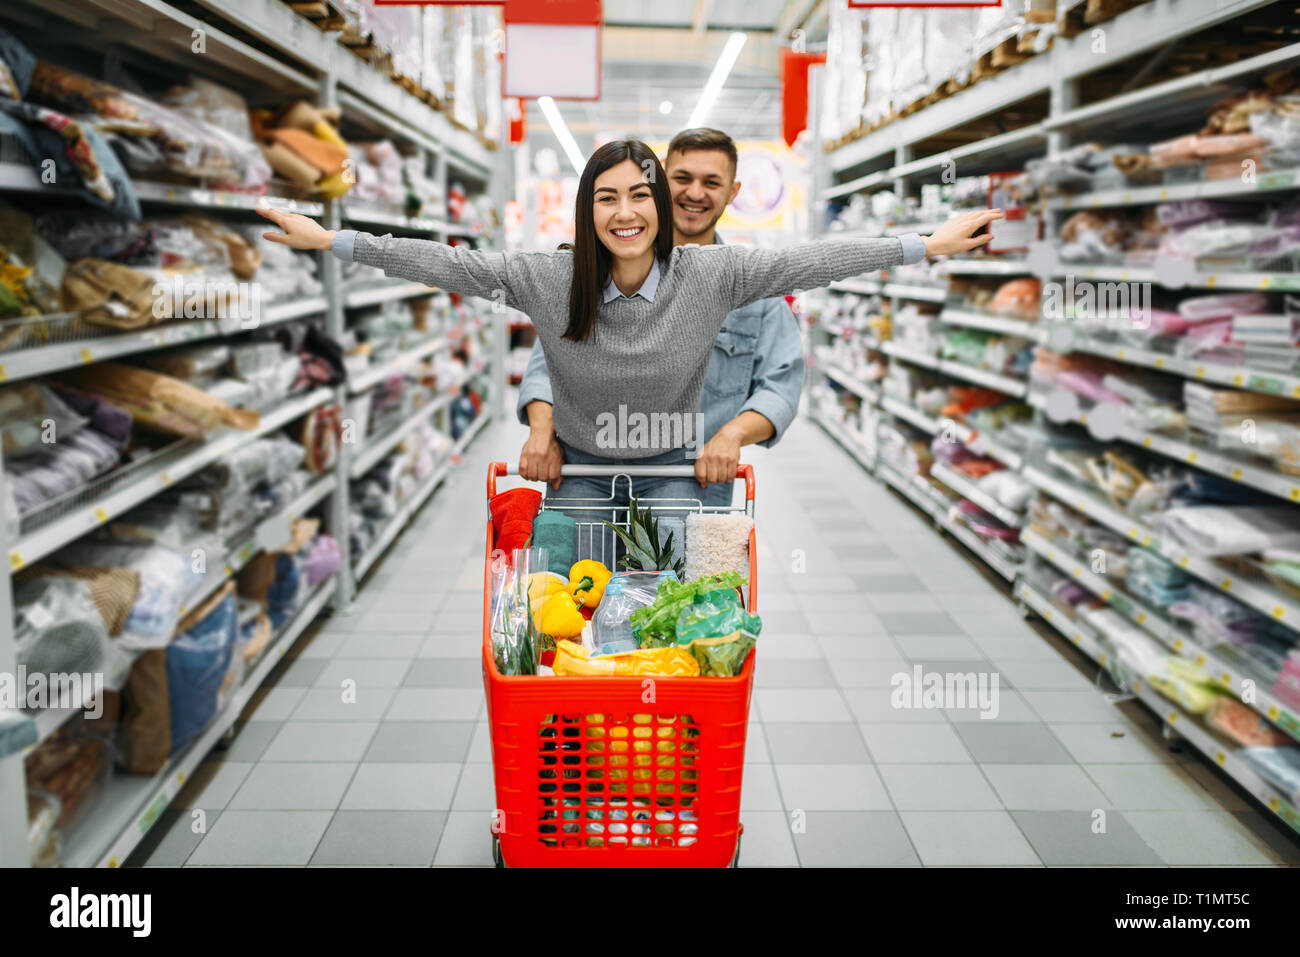 Playful Couple With Cart Full Of Goods In Store Stock Photo